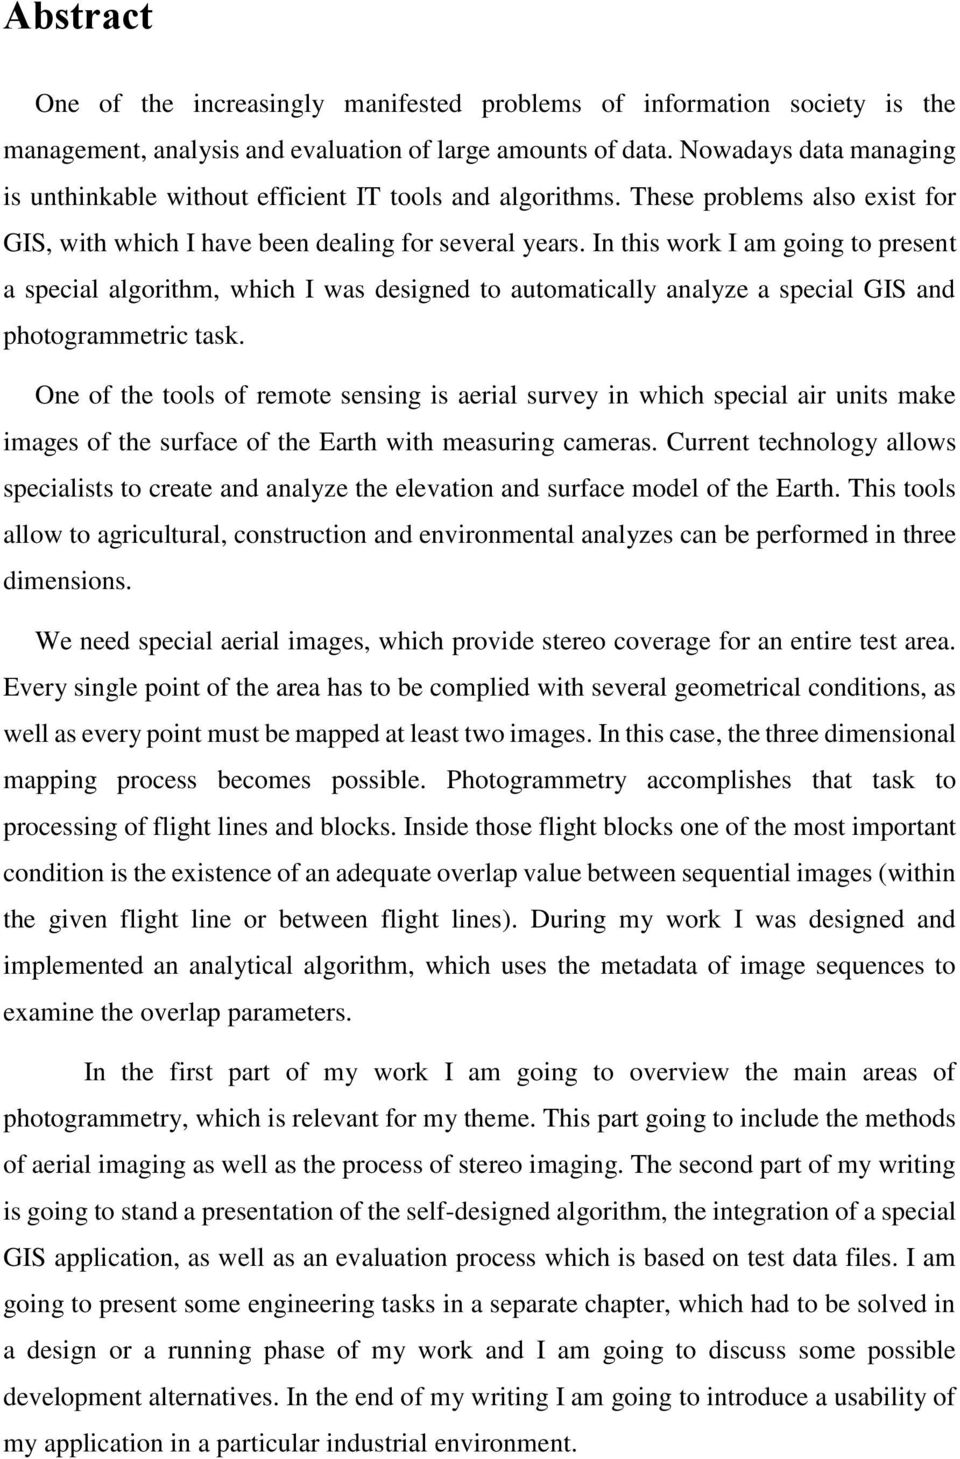 In this work I am going to present a special algorithm, which I was designed to automatically analyze a special GIS and photogrammetric task.